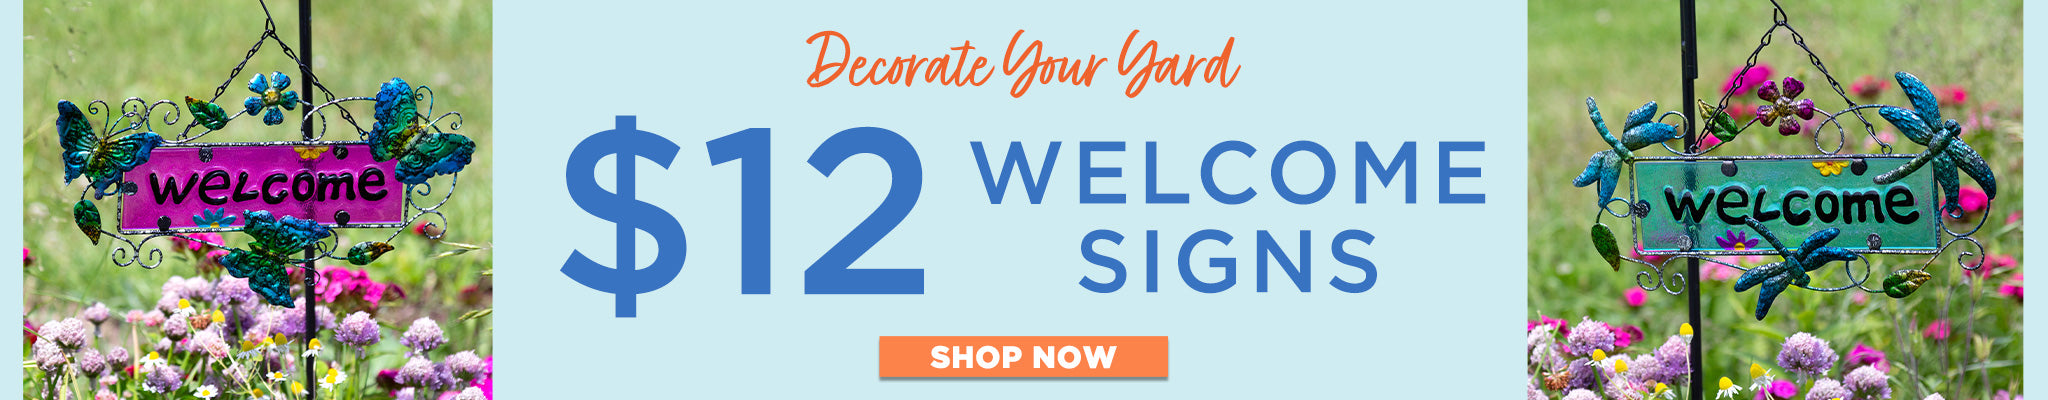 Decorate Your Yard | $12 Welcome Signs | Today Only